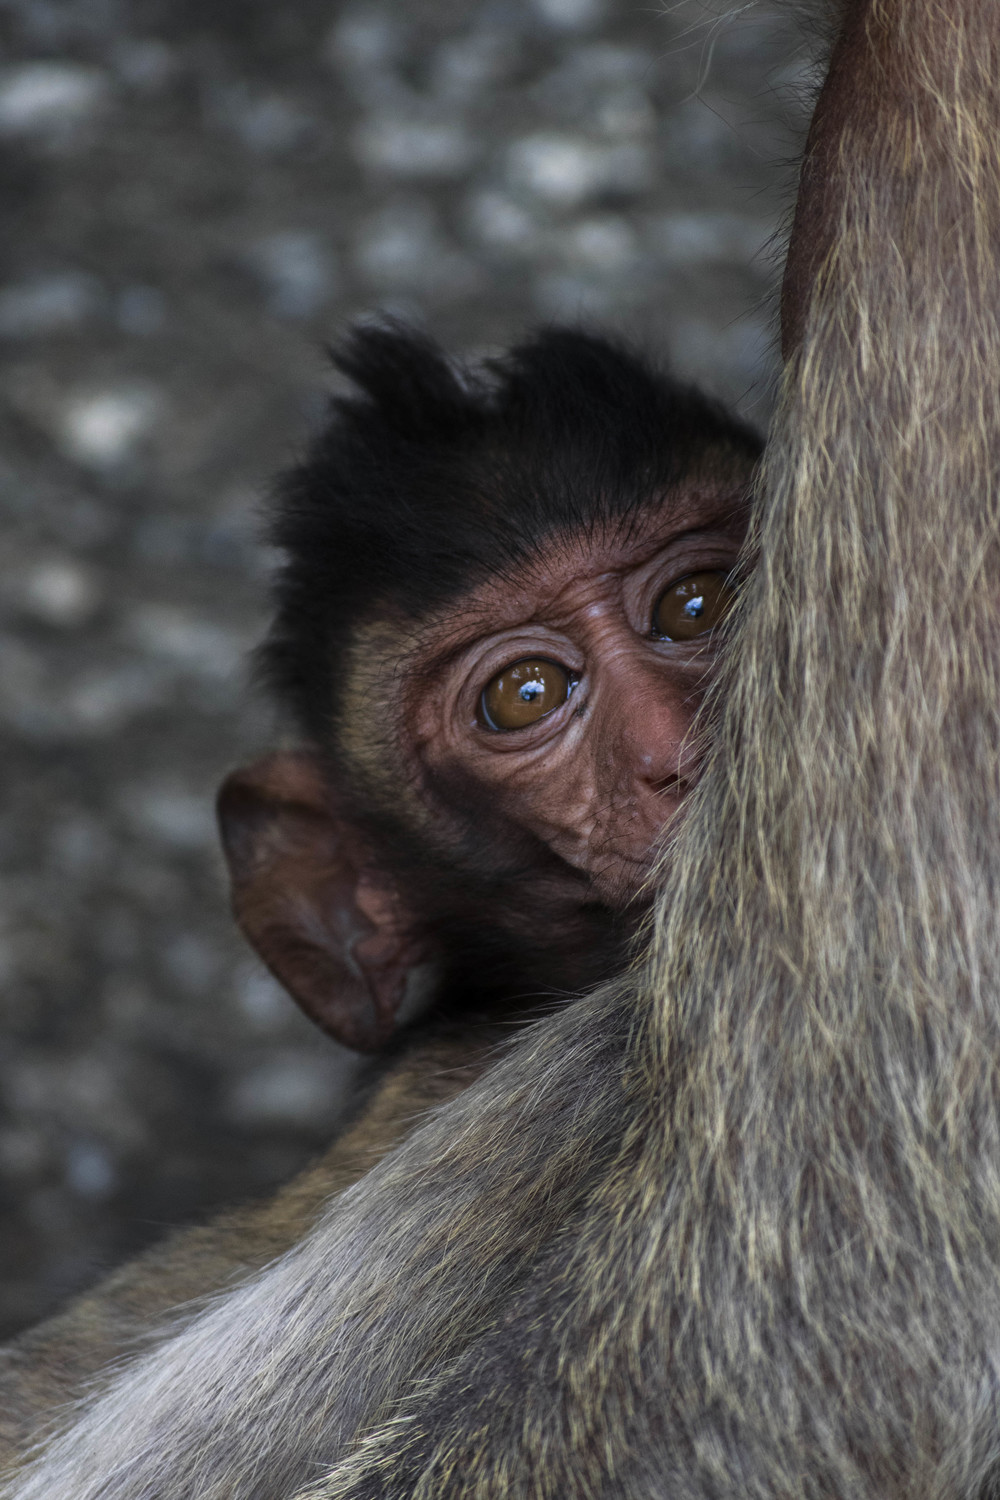 A baby macaque hides behind its mother